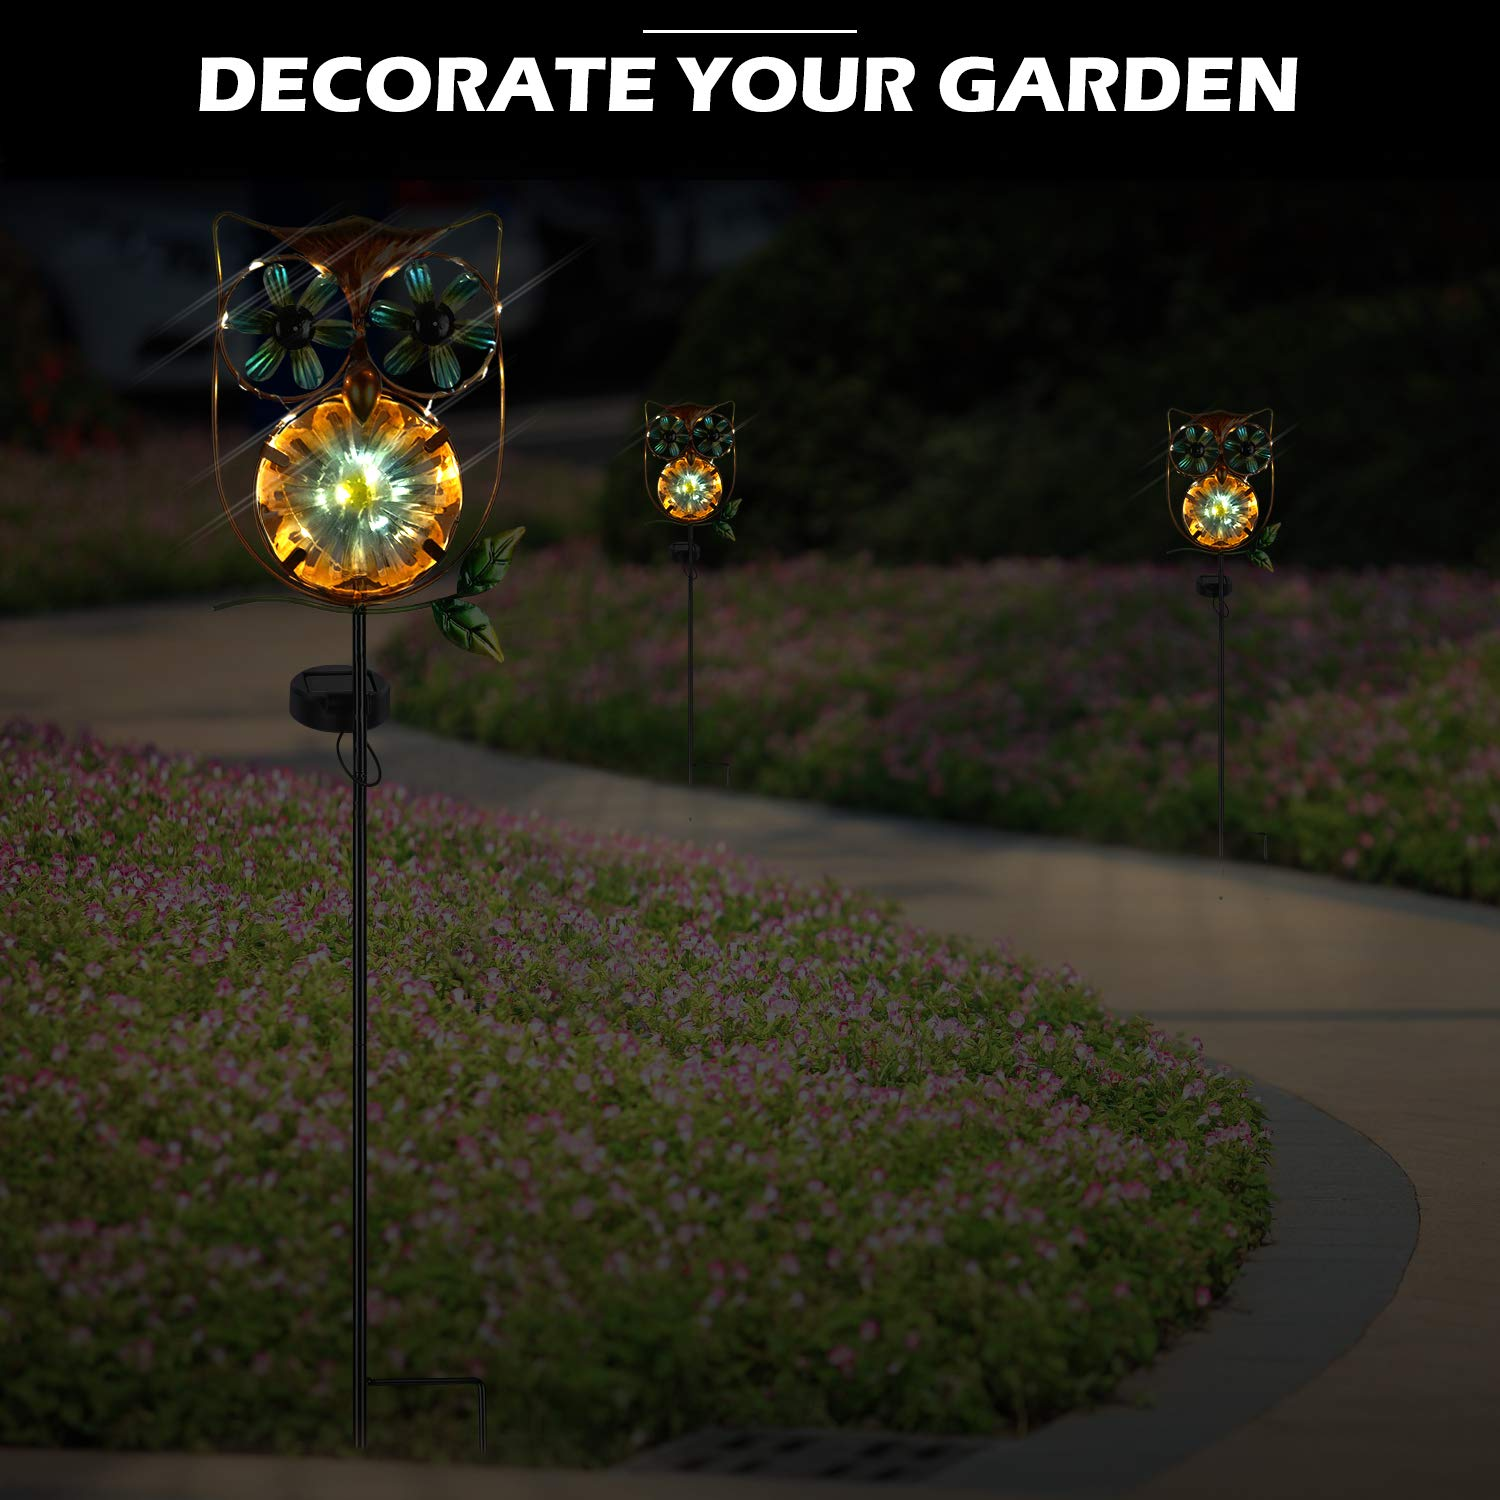 Leidrail Solar Garden Light Outdoor Decorative Stake Owl Wind Spinner Metal Pathway Lights Solar Powered Yard Decor Buy Online In Colombia At Desertcart Productid 181935568